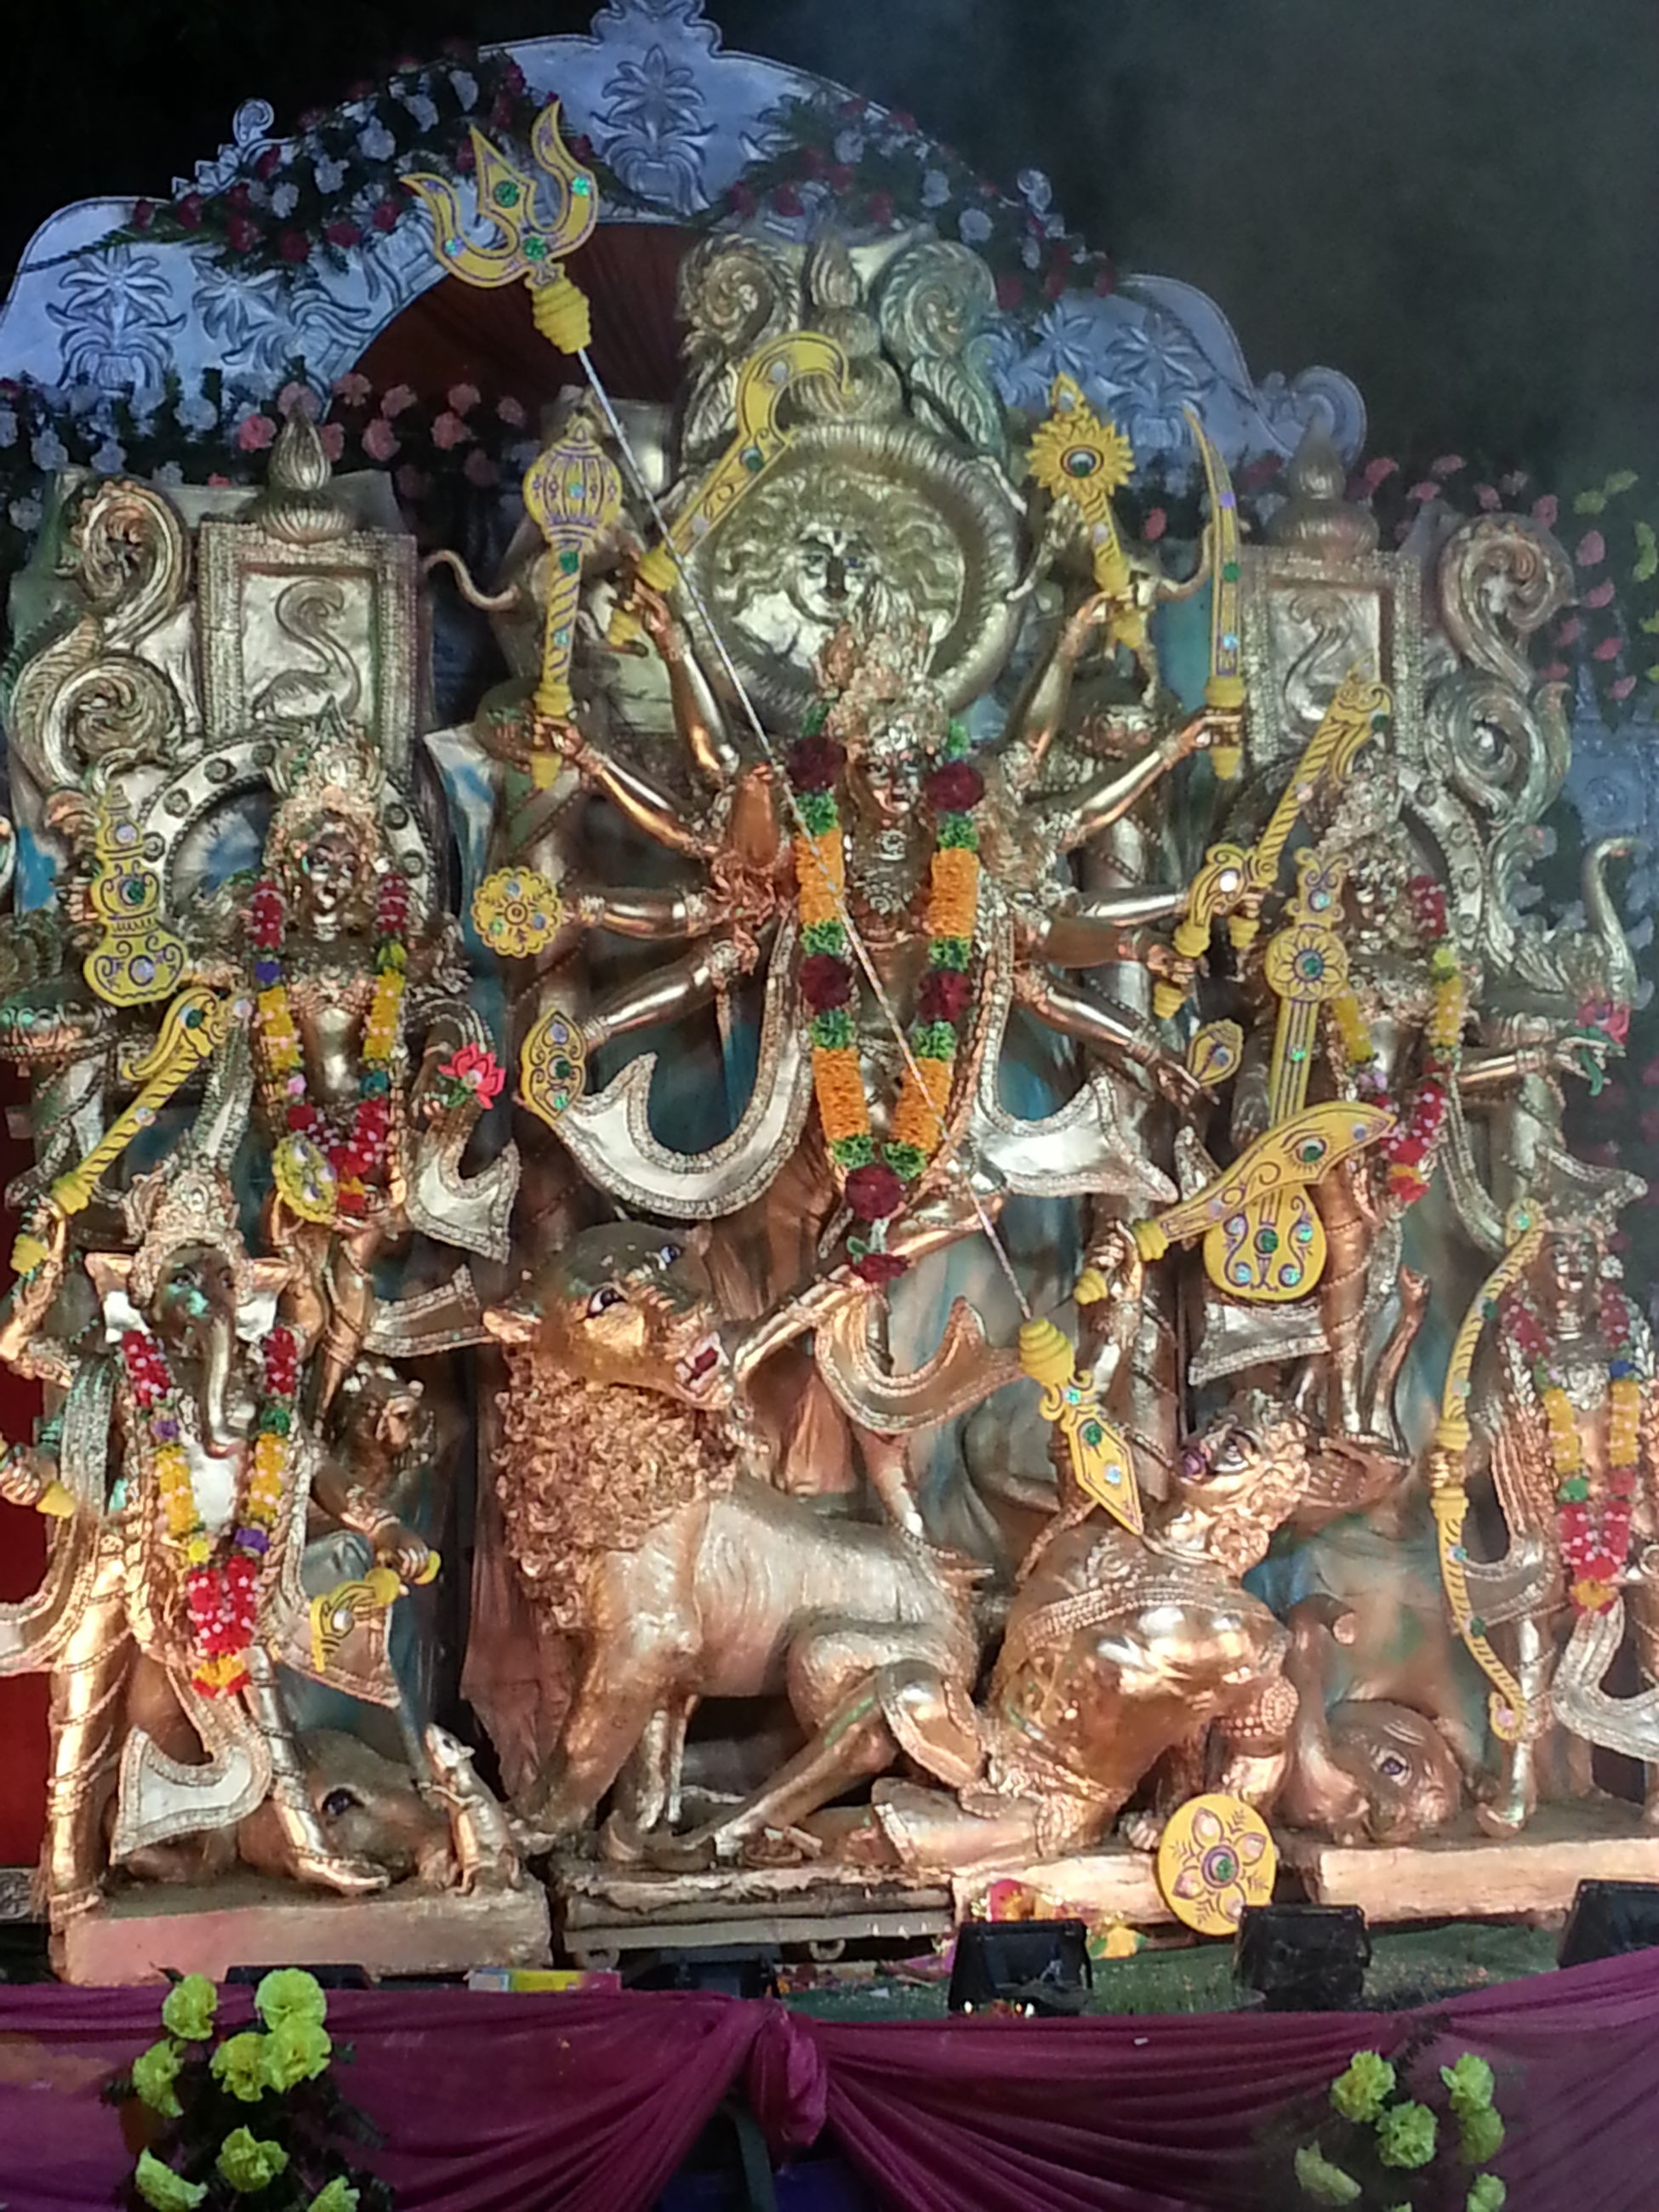 art and craft, art, creativity, indoors, human representation, statue, religion, sculpture, animal representation, decoration, spirituality, tradition, cultures, craft, multi colored, for sale, hanging, large group of objects, abundance